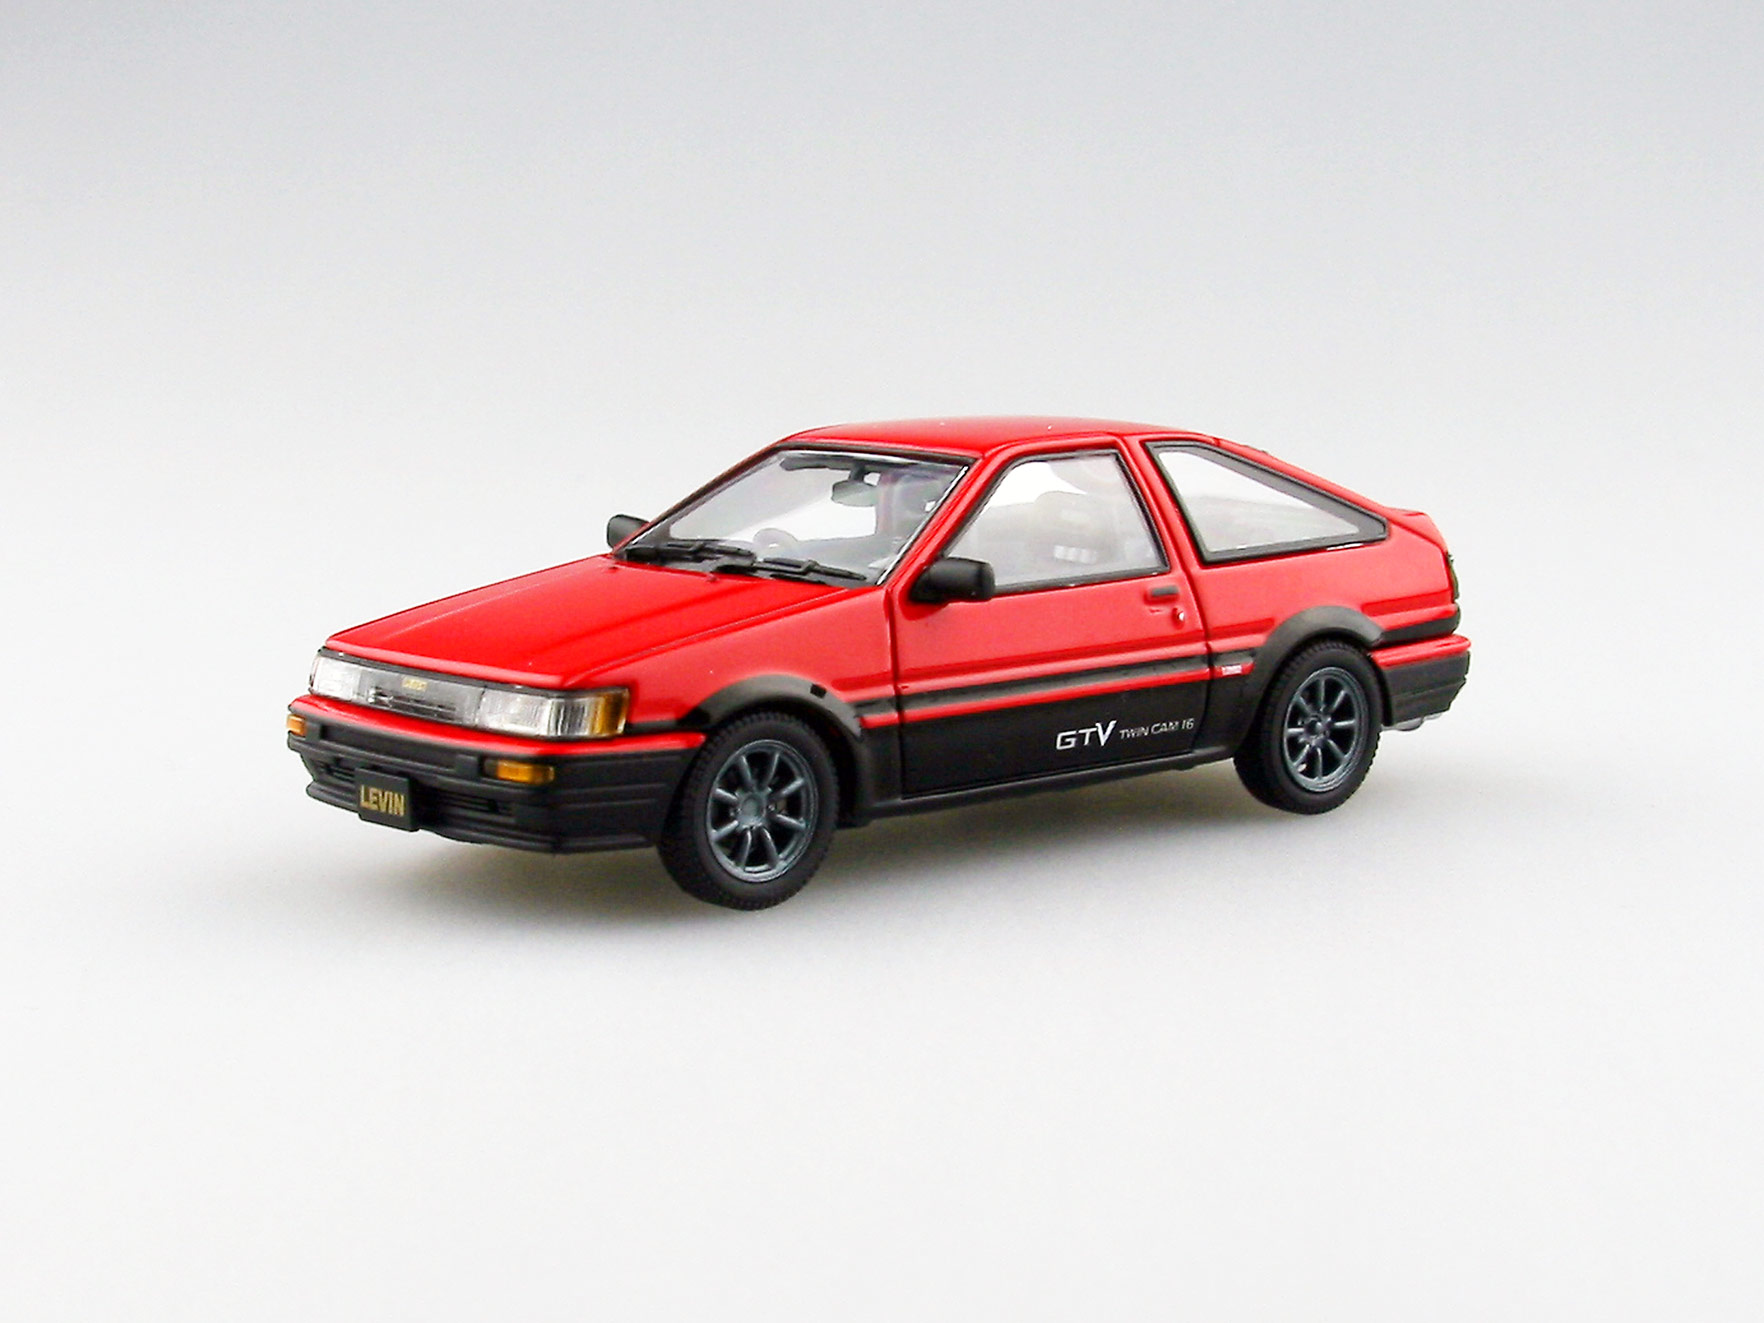 【45185】TOYOTA COROLLA LEVIN 1600GTV with alloy wheel (RED/BLACK)